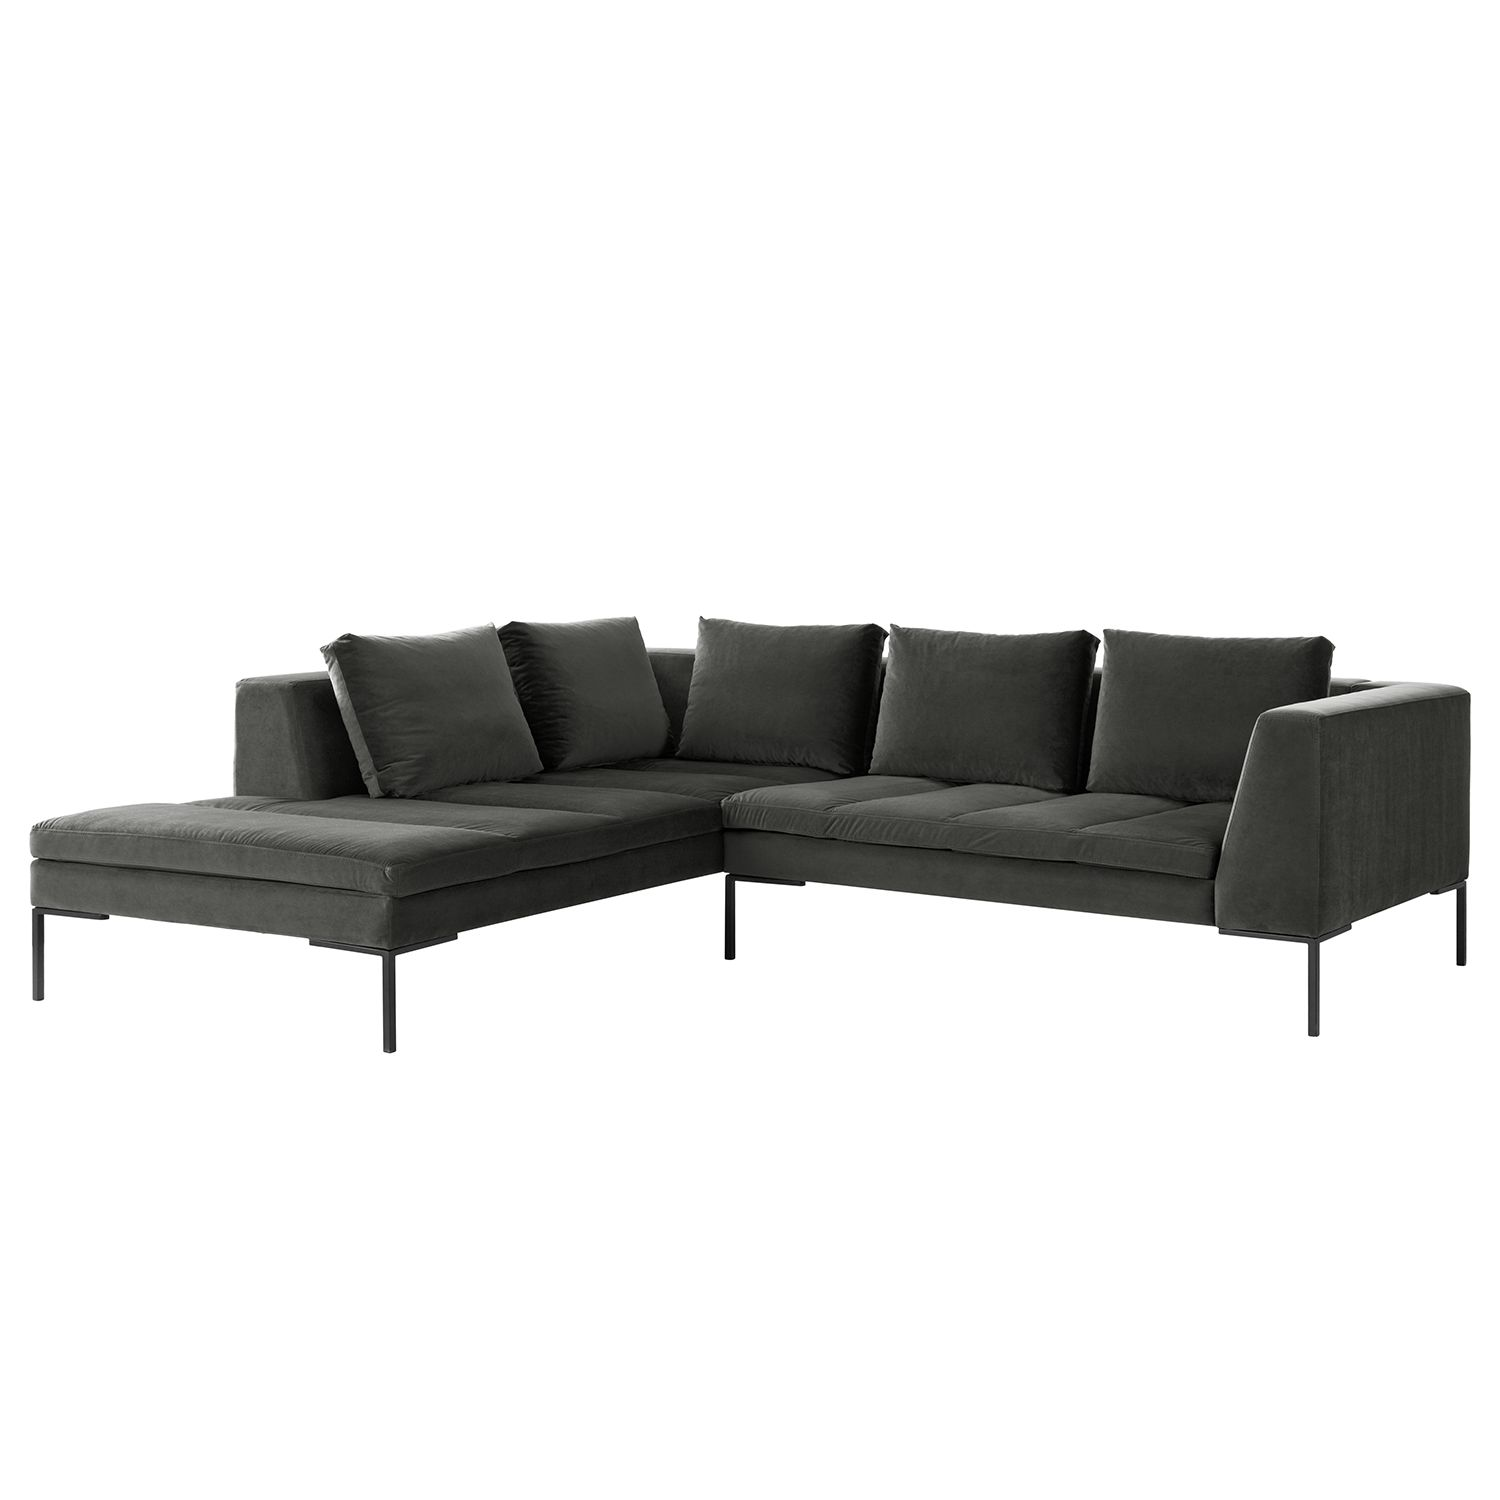 ecksofa madison samt ottomane davorstehend links 255 cm stoff shyla rauchgr n studio. Black Bedroom Furniture Sets. Home Design Ideas